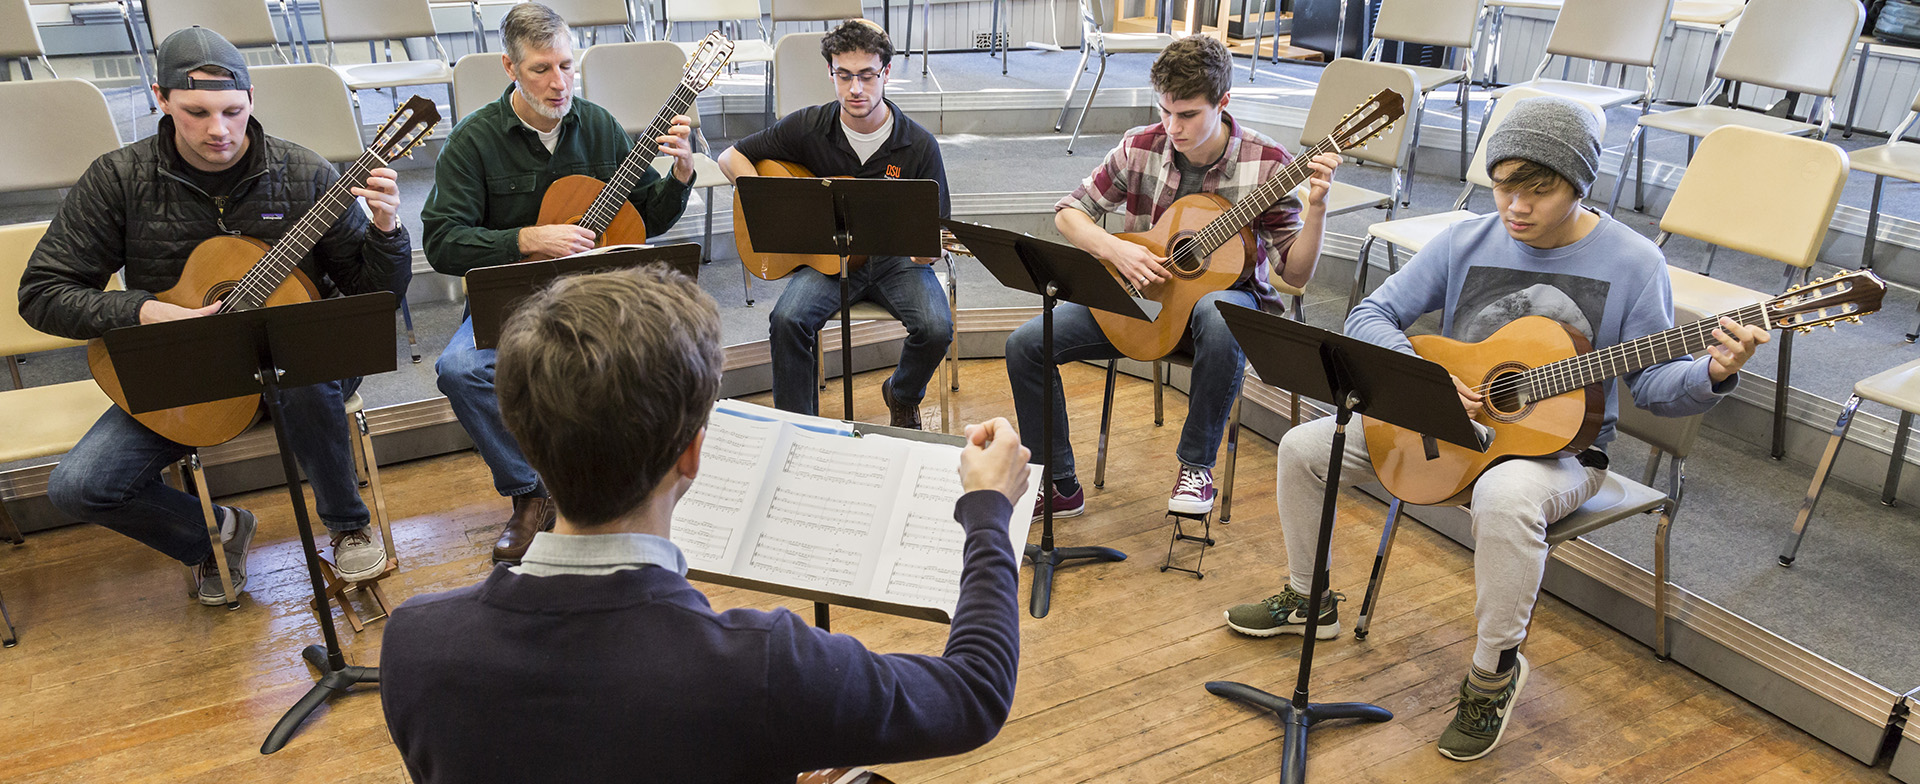 OSU guitar ensemble in rehearsal